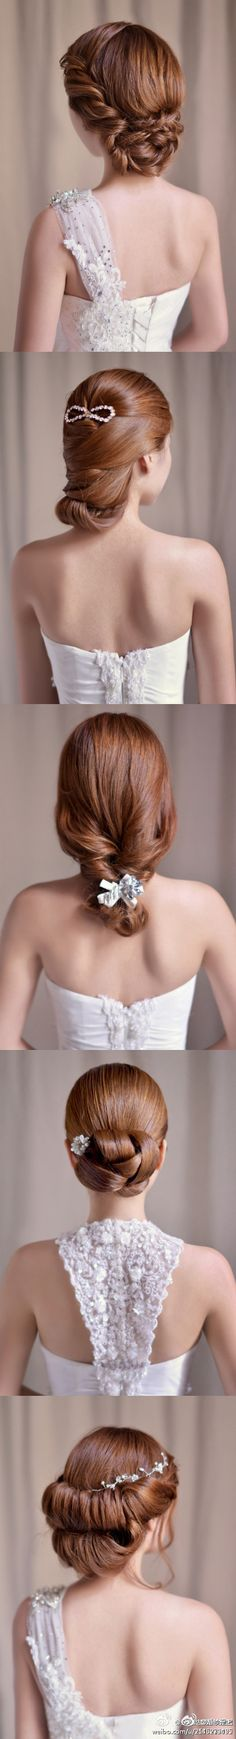 formal updo hair-do's. I like the top one